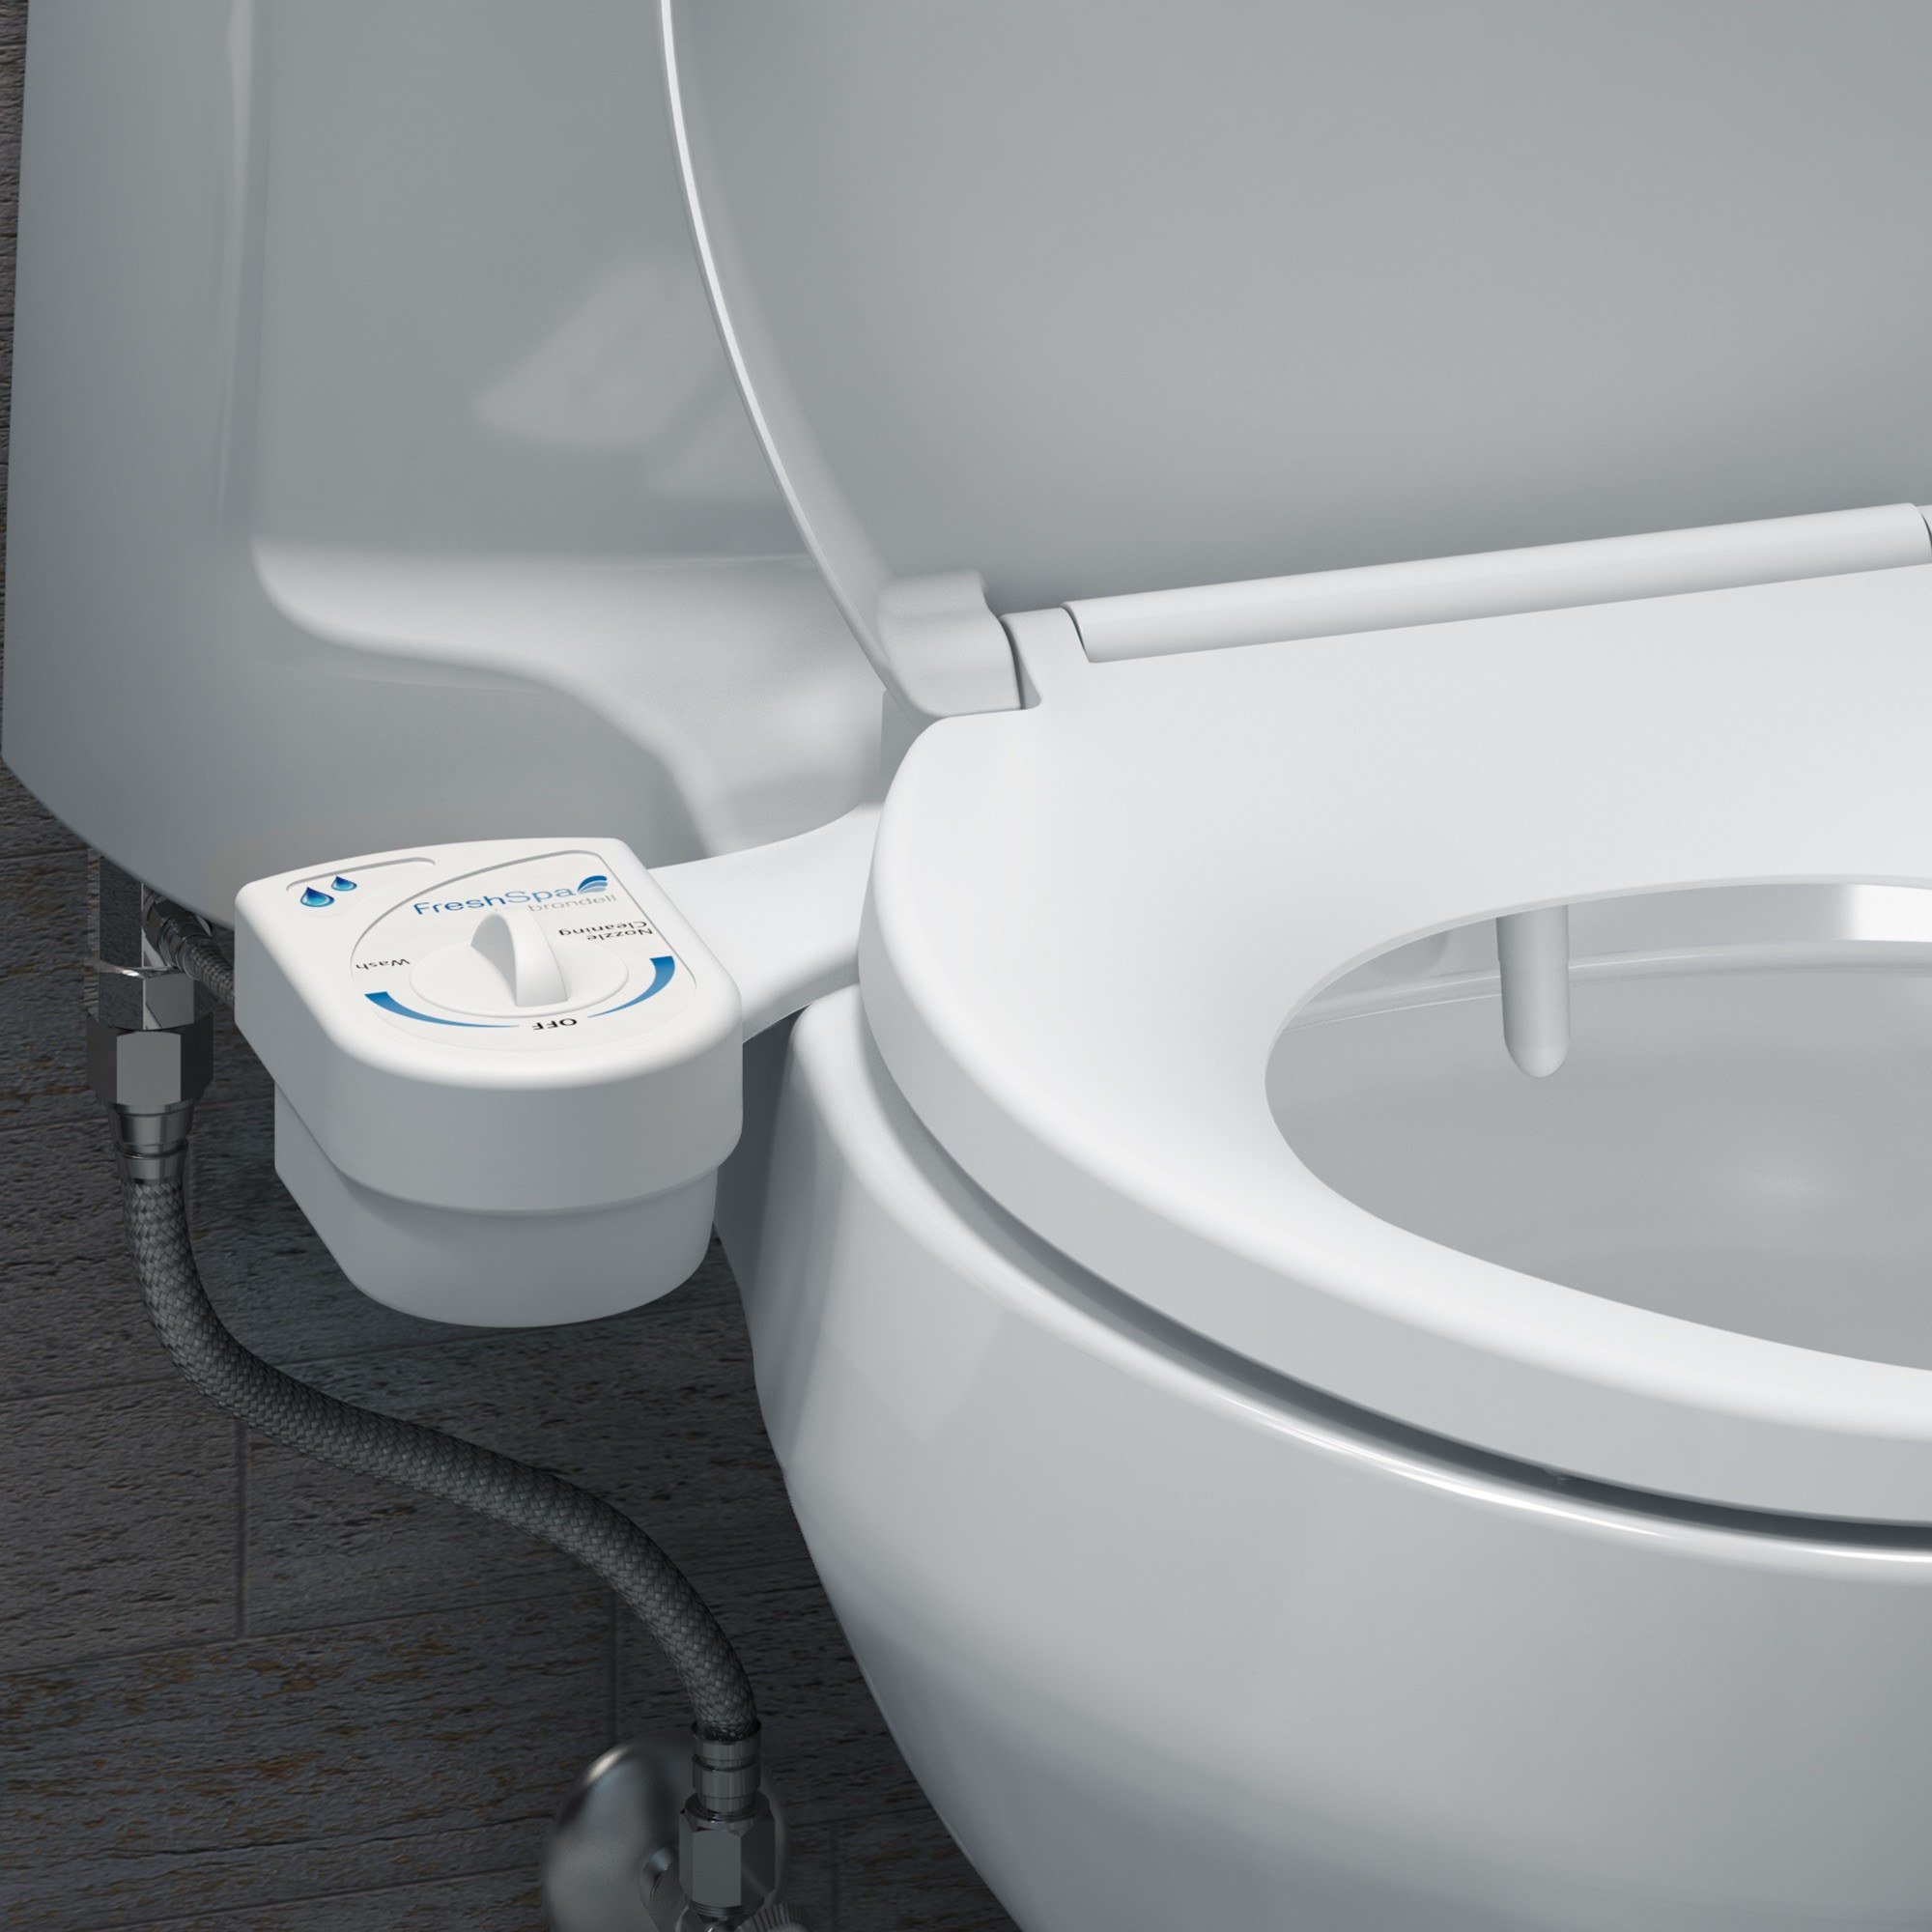 FreshSpa fs10 bidet attachment installed shot closeup